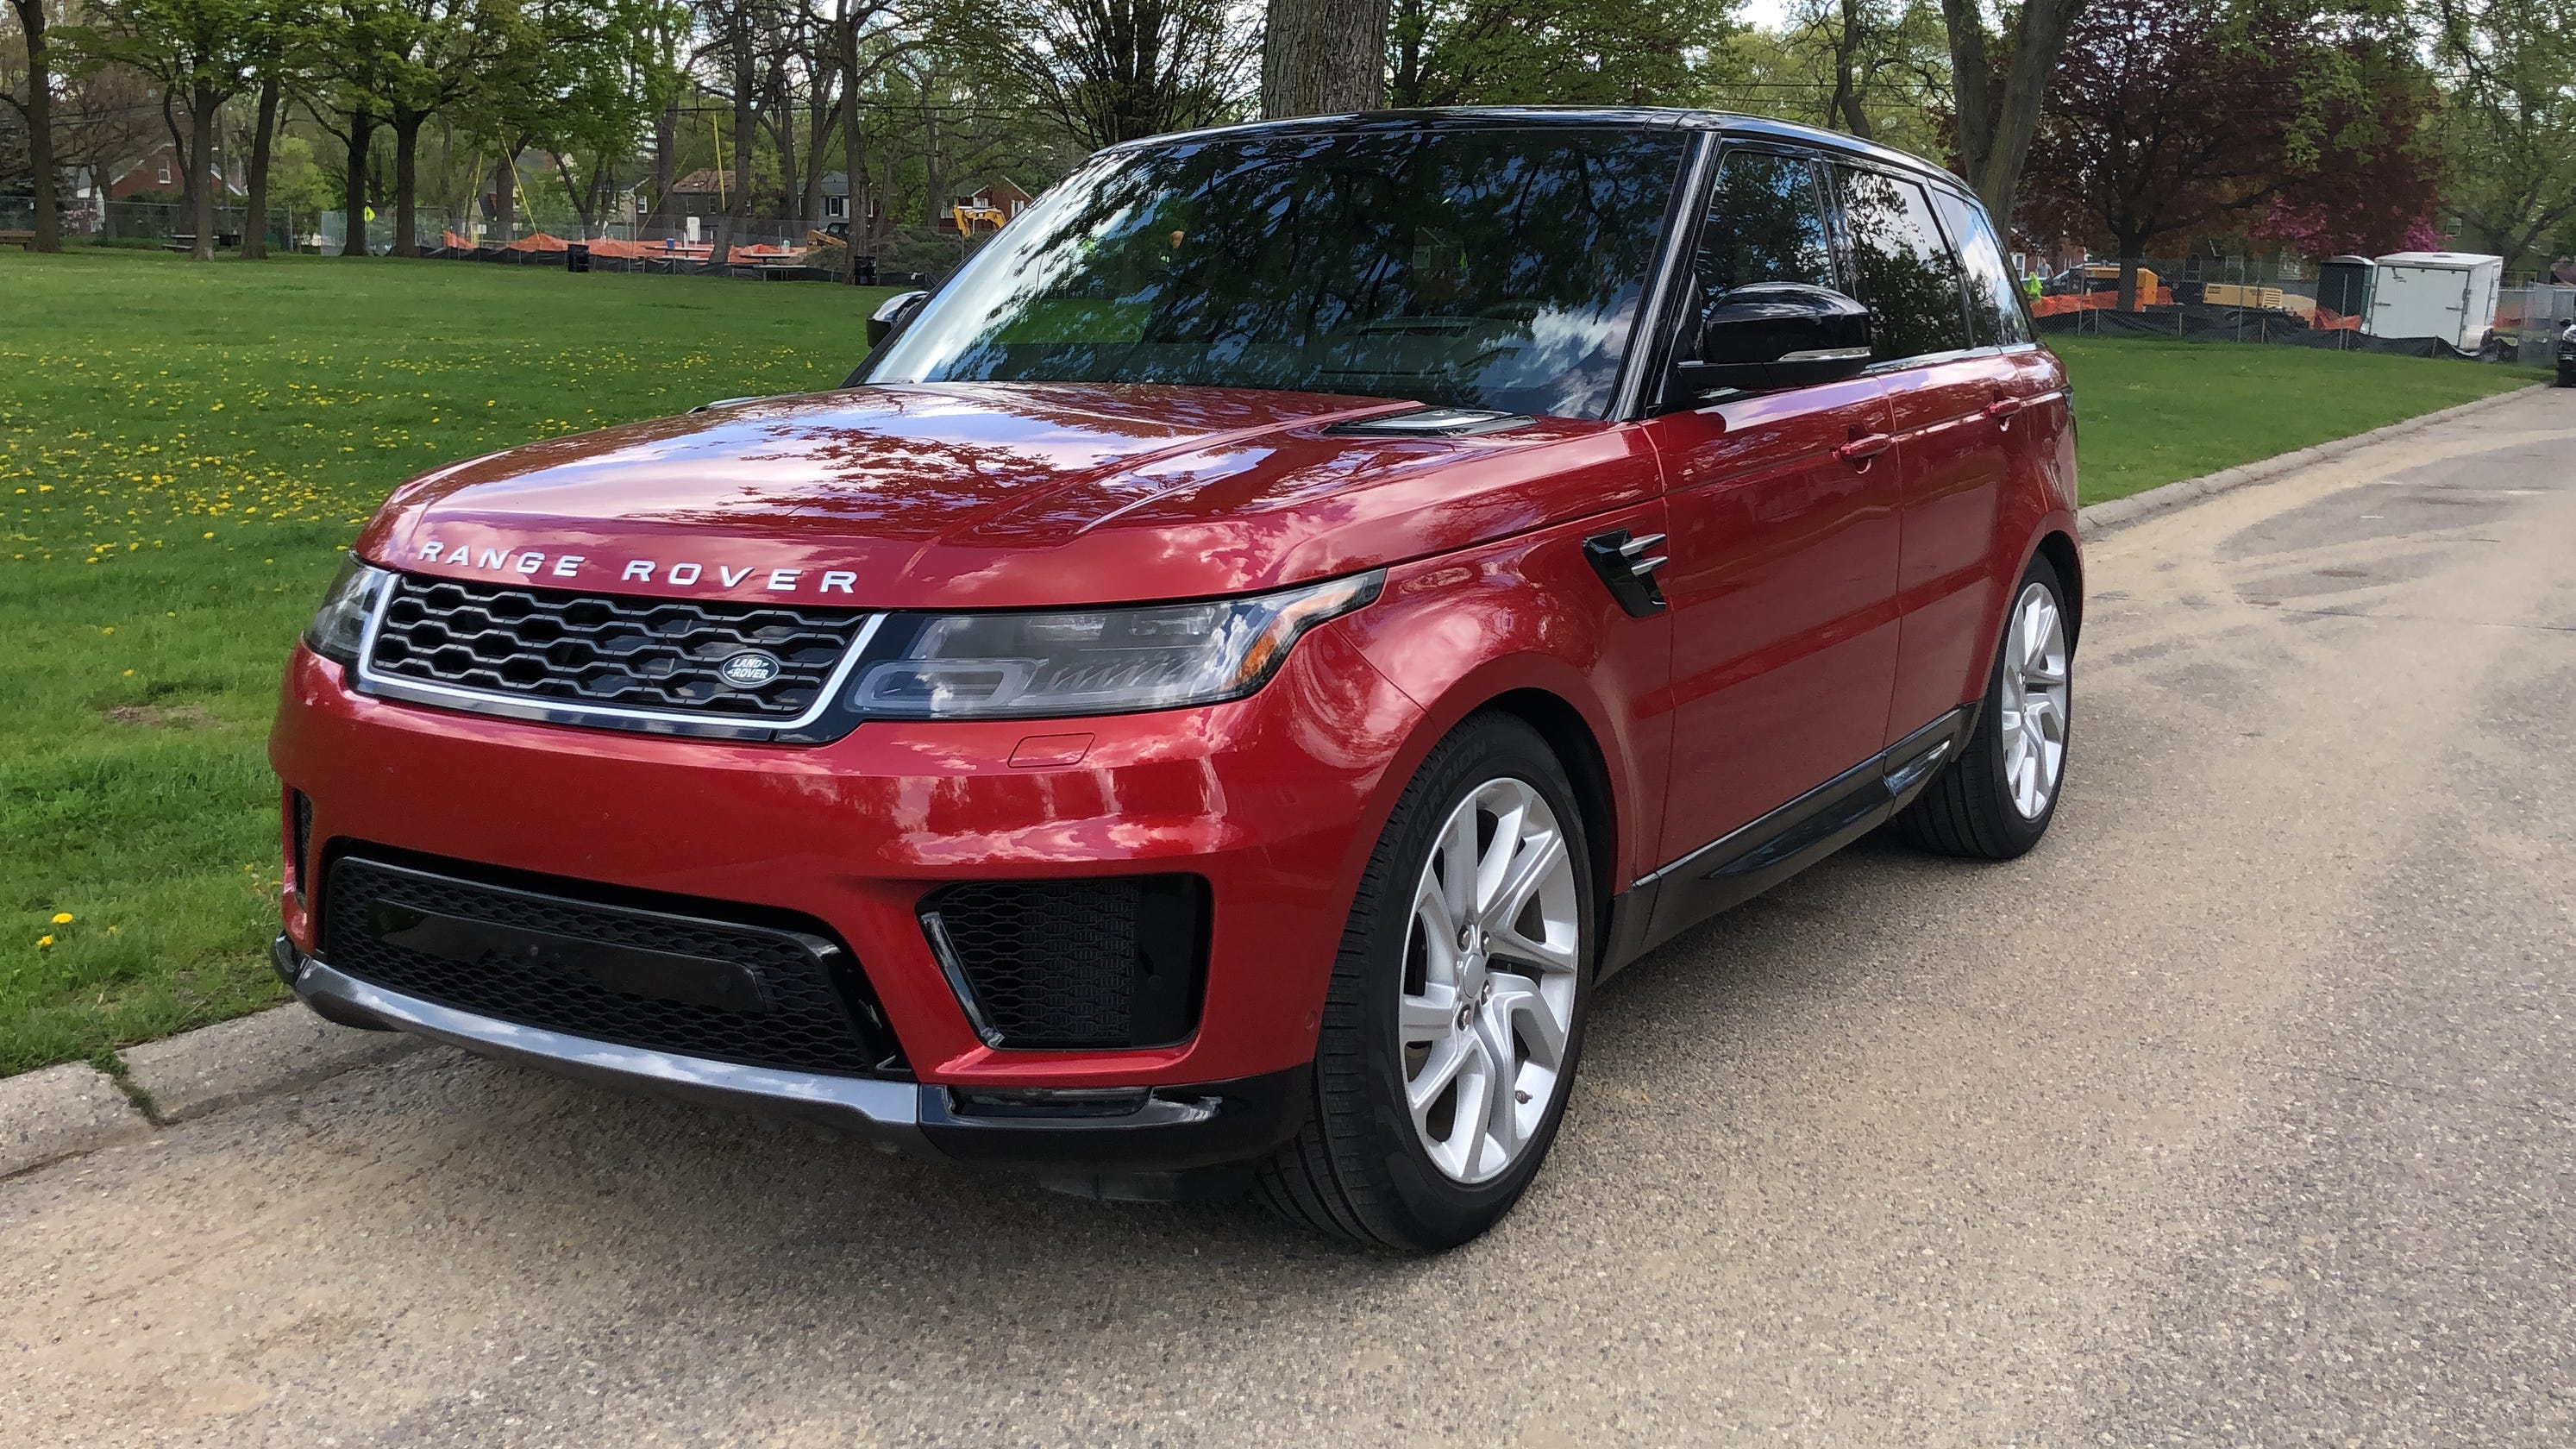 2019 Land Rover Range Rover Sport: PHEV Version, Changes, Price >> 2019 Range Rover Sport Hse P400e Plug In Hybrid An Electric